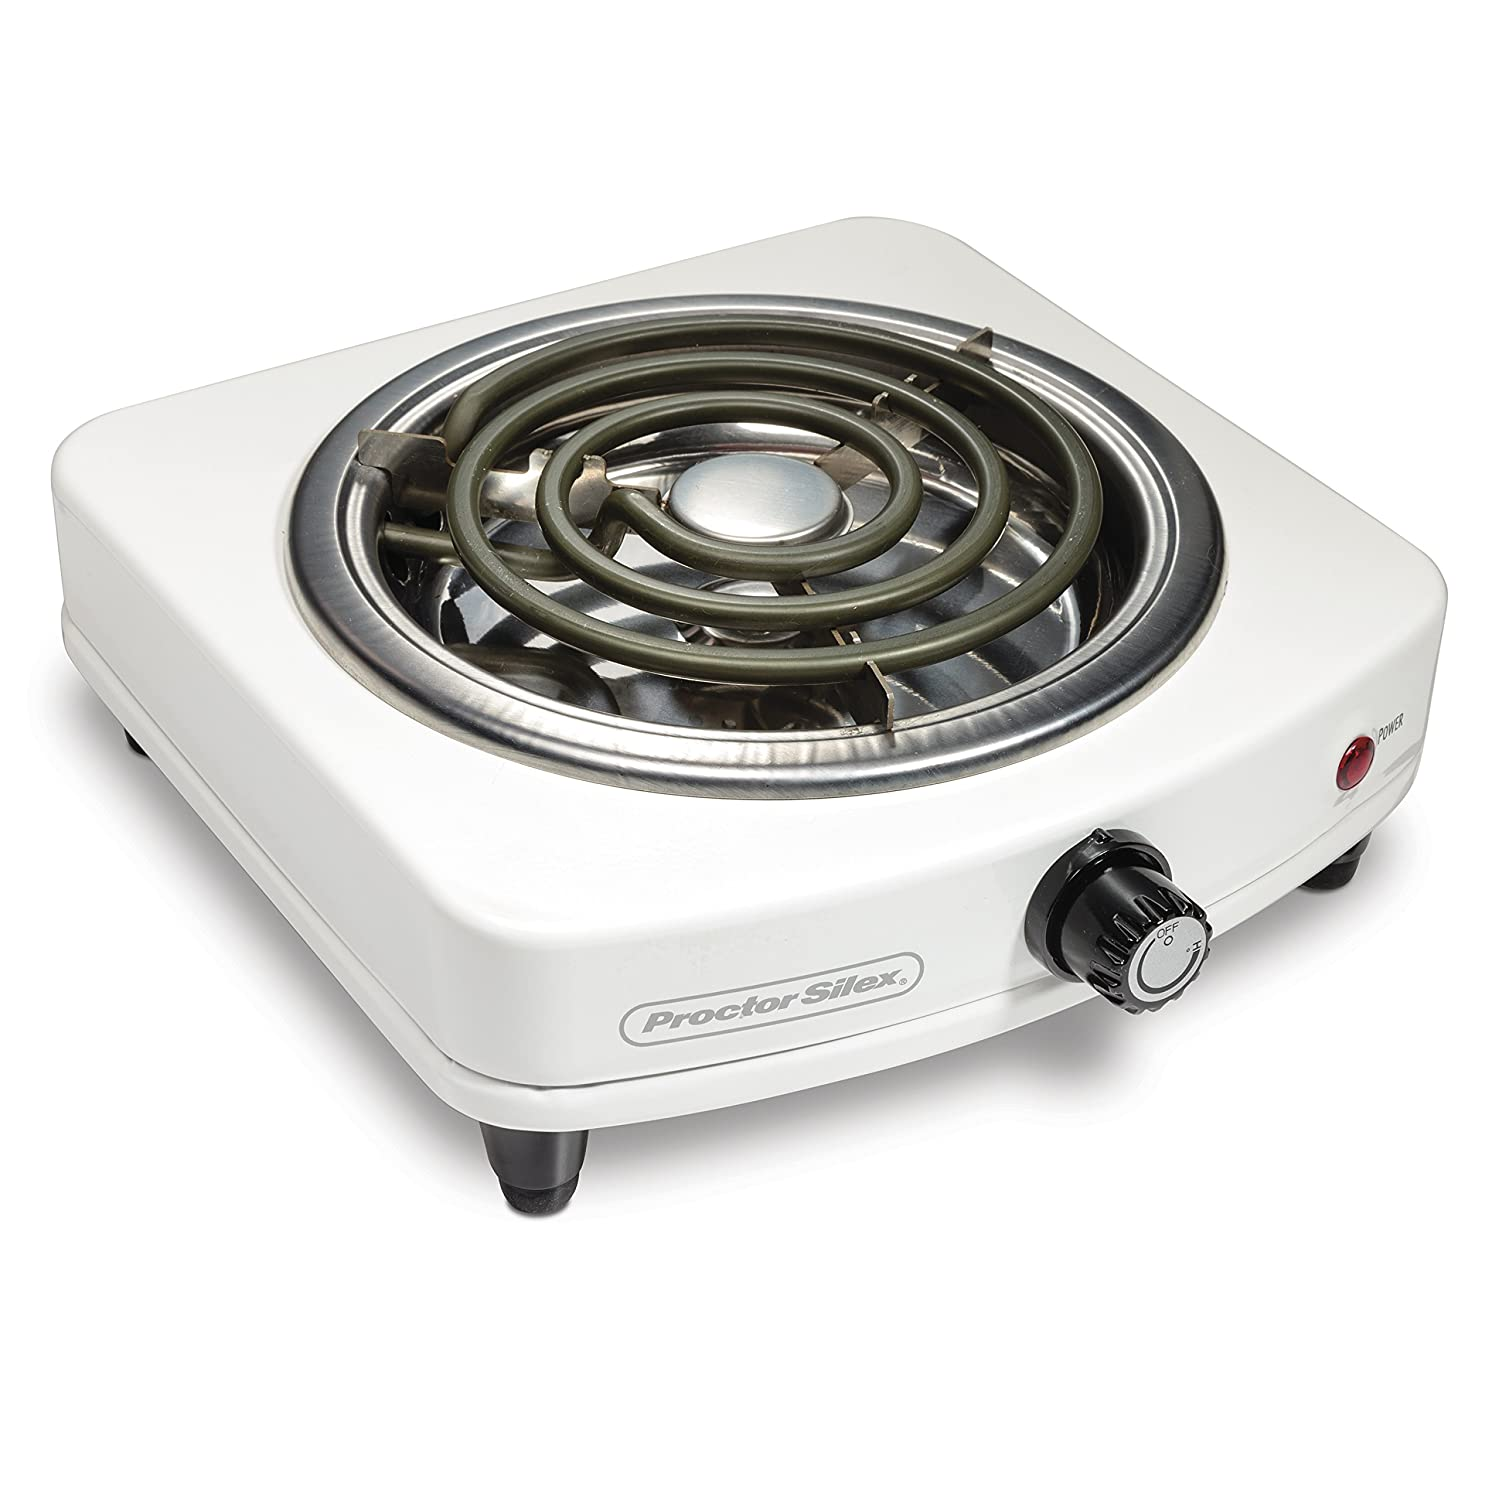 Proctor Silex 34103 Electric Single Burner, Compact and Portable, Adjustable Temperature Hot Plate, White Stainless